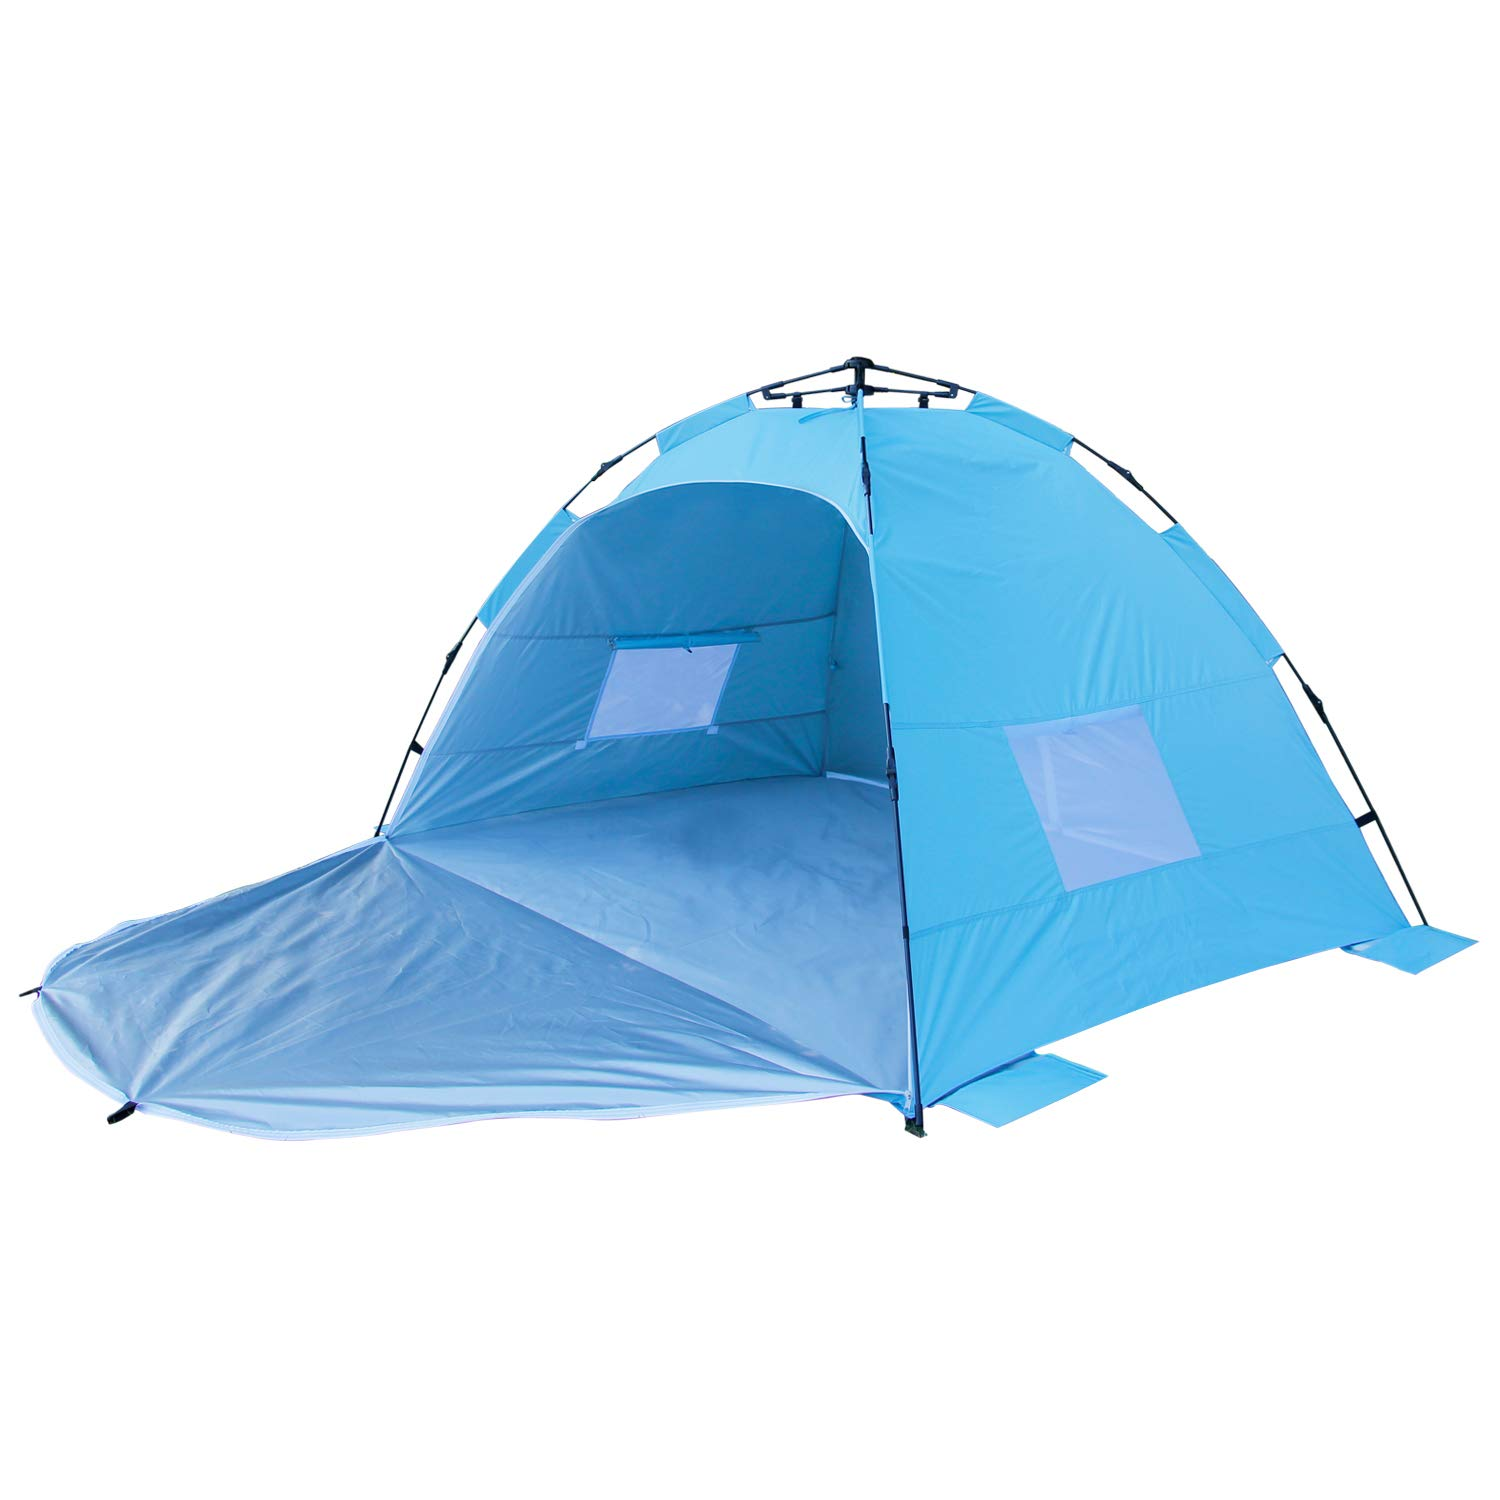 ALPIKA Beach Tent 2-3 Person Camping Tent UV Protection & Waterproof Sun Shelter Automatic Tent for Outdoor by ALPIKA